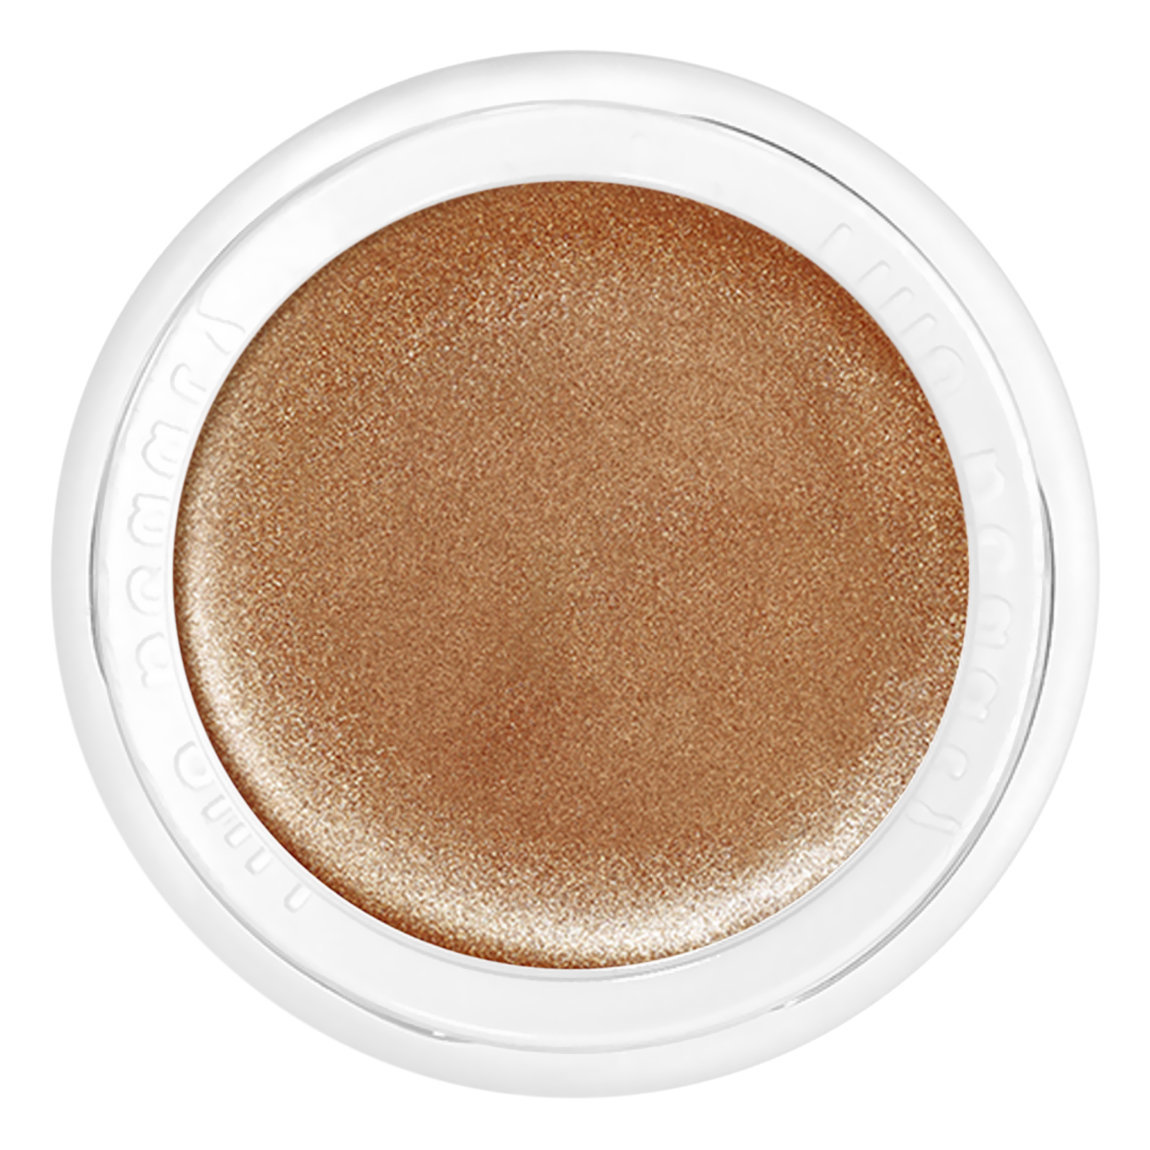 rms beauty Buriti Bronzer alternative view 1 - product swatch.